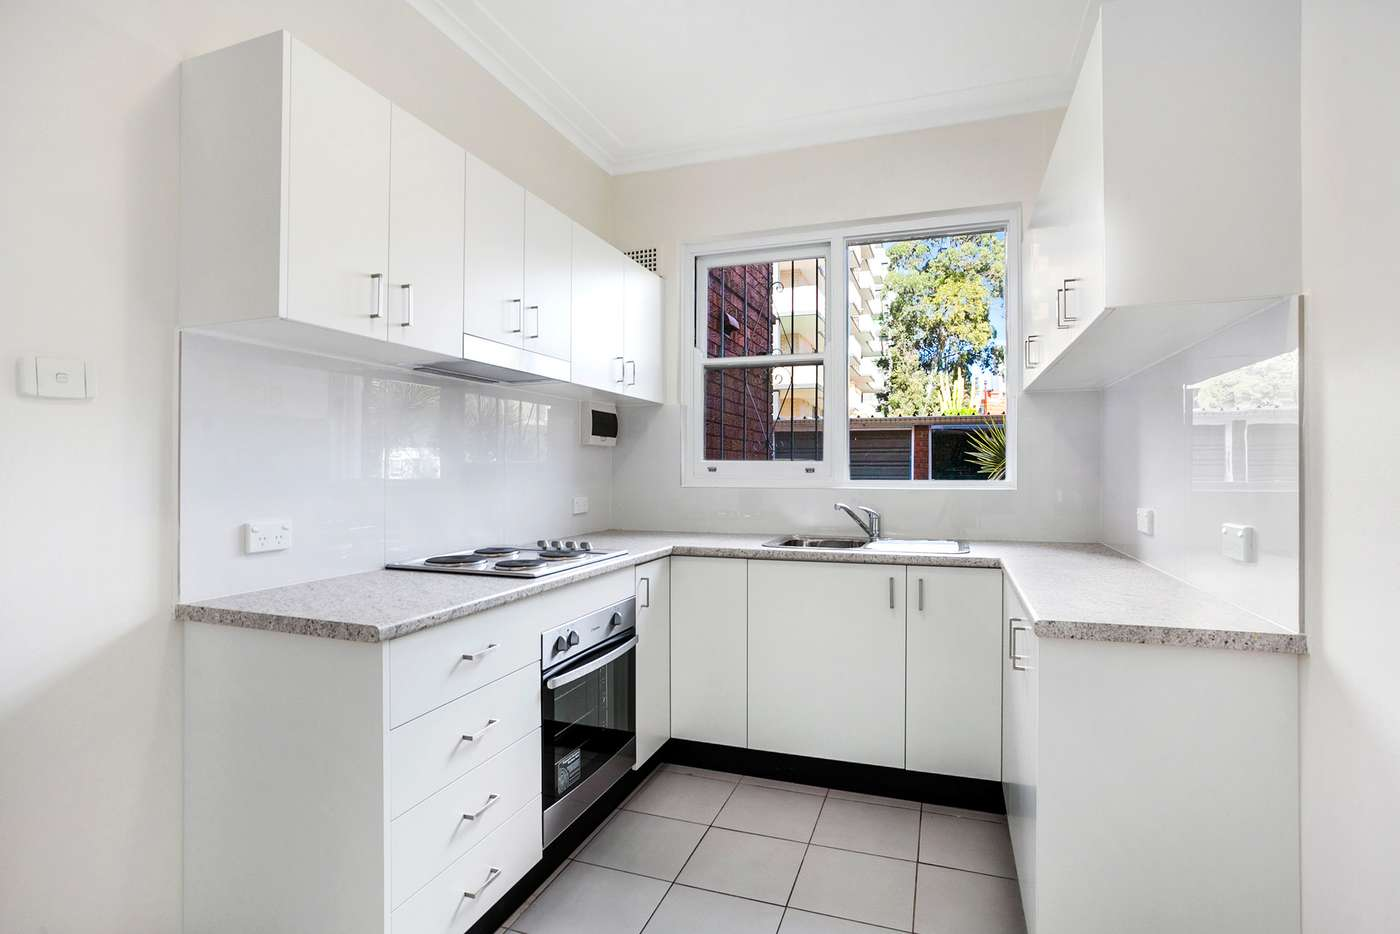 Main view of Homely apartment listing, 10/18 Gordon Street, Brighton-le-sands NSW 2216